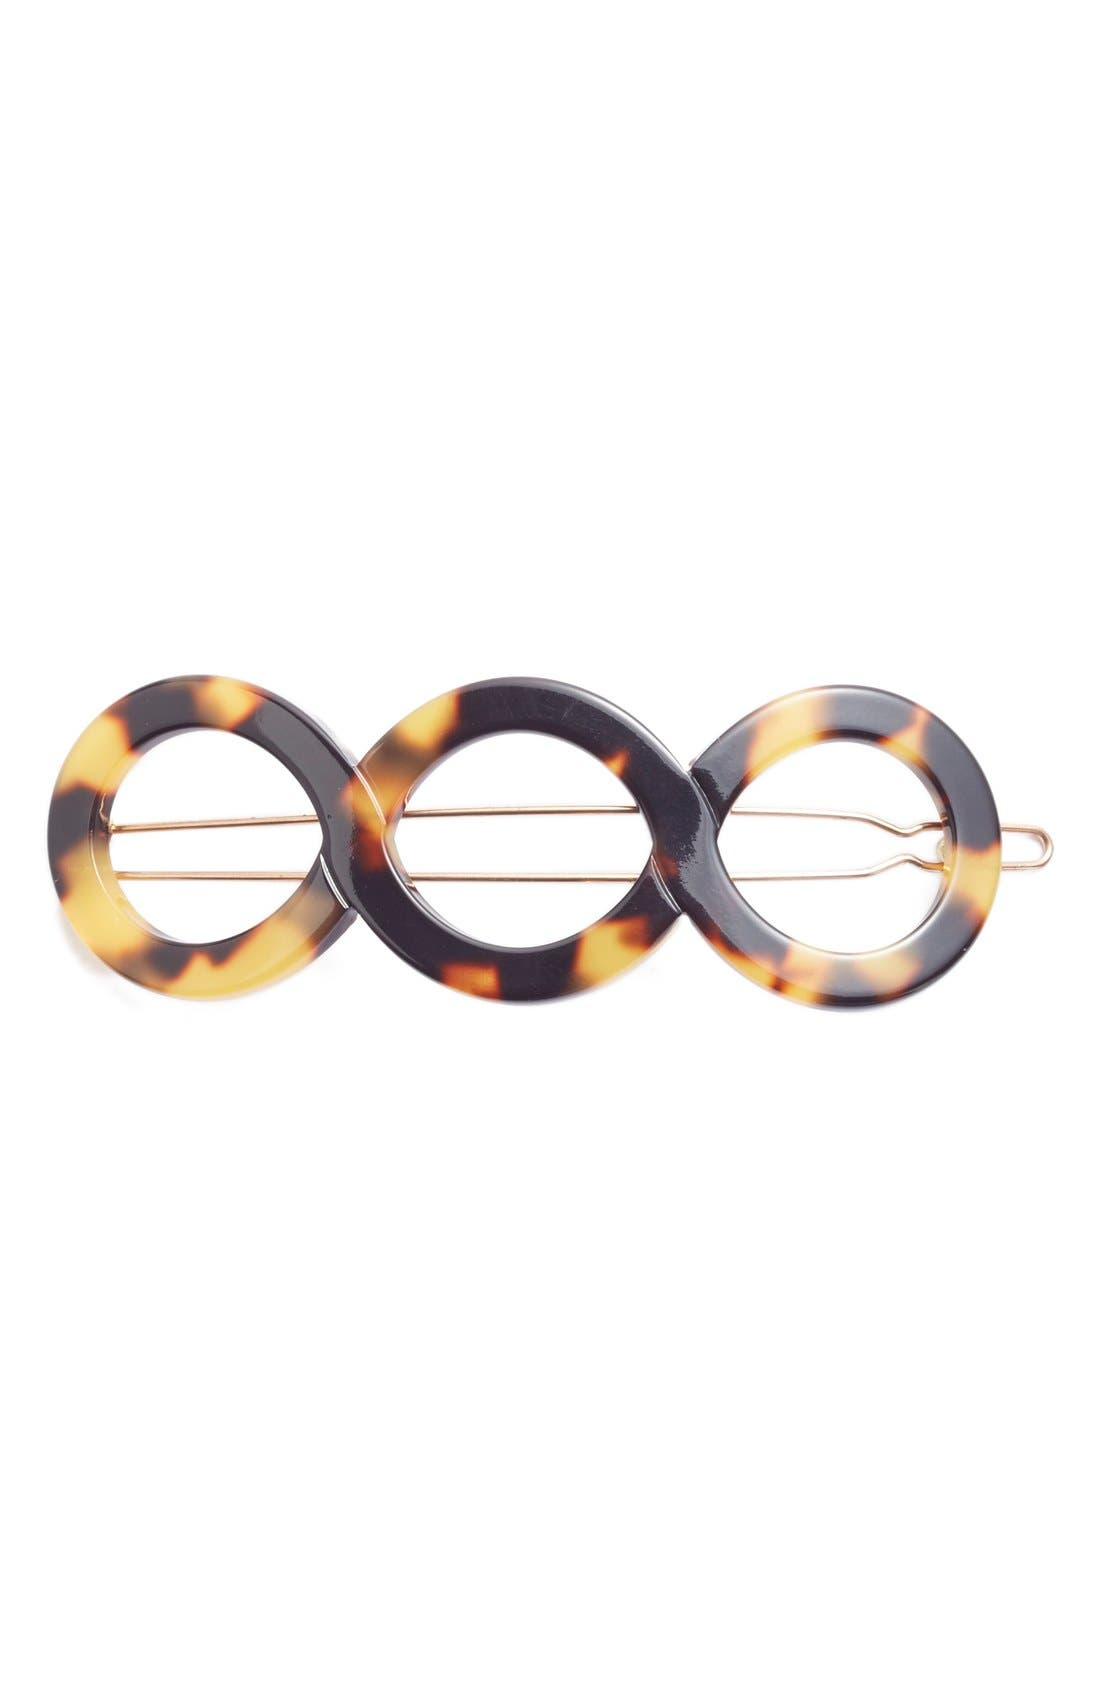 FRANCE LUXE Triple Circle Tige Boule Barrette